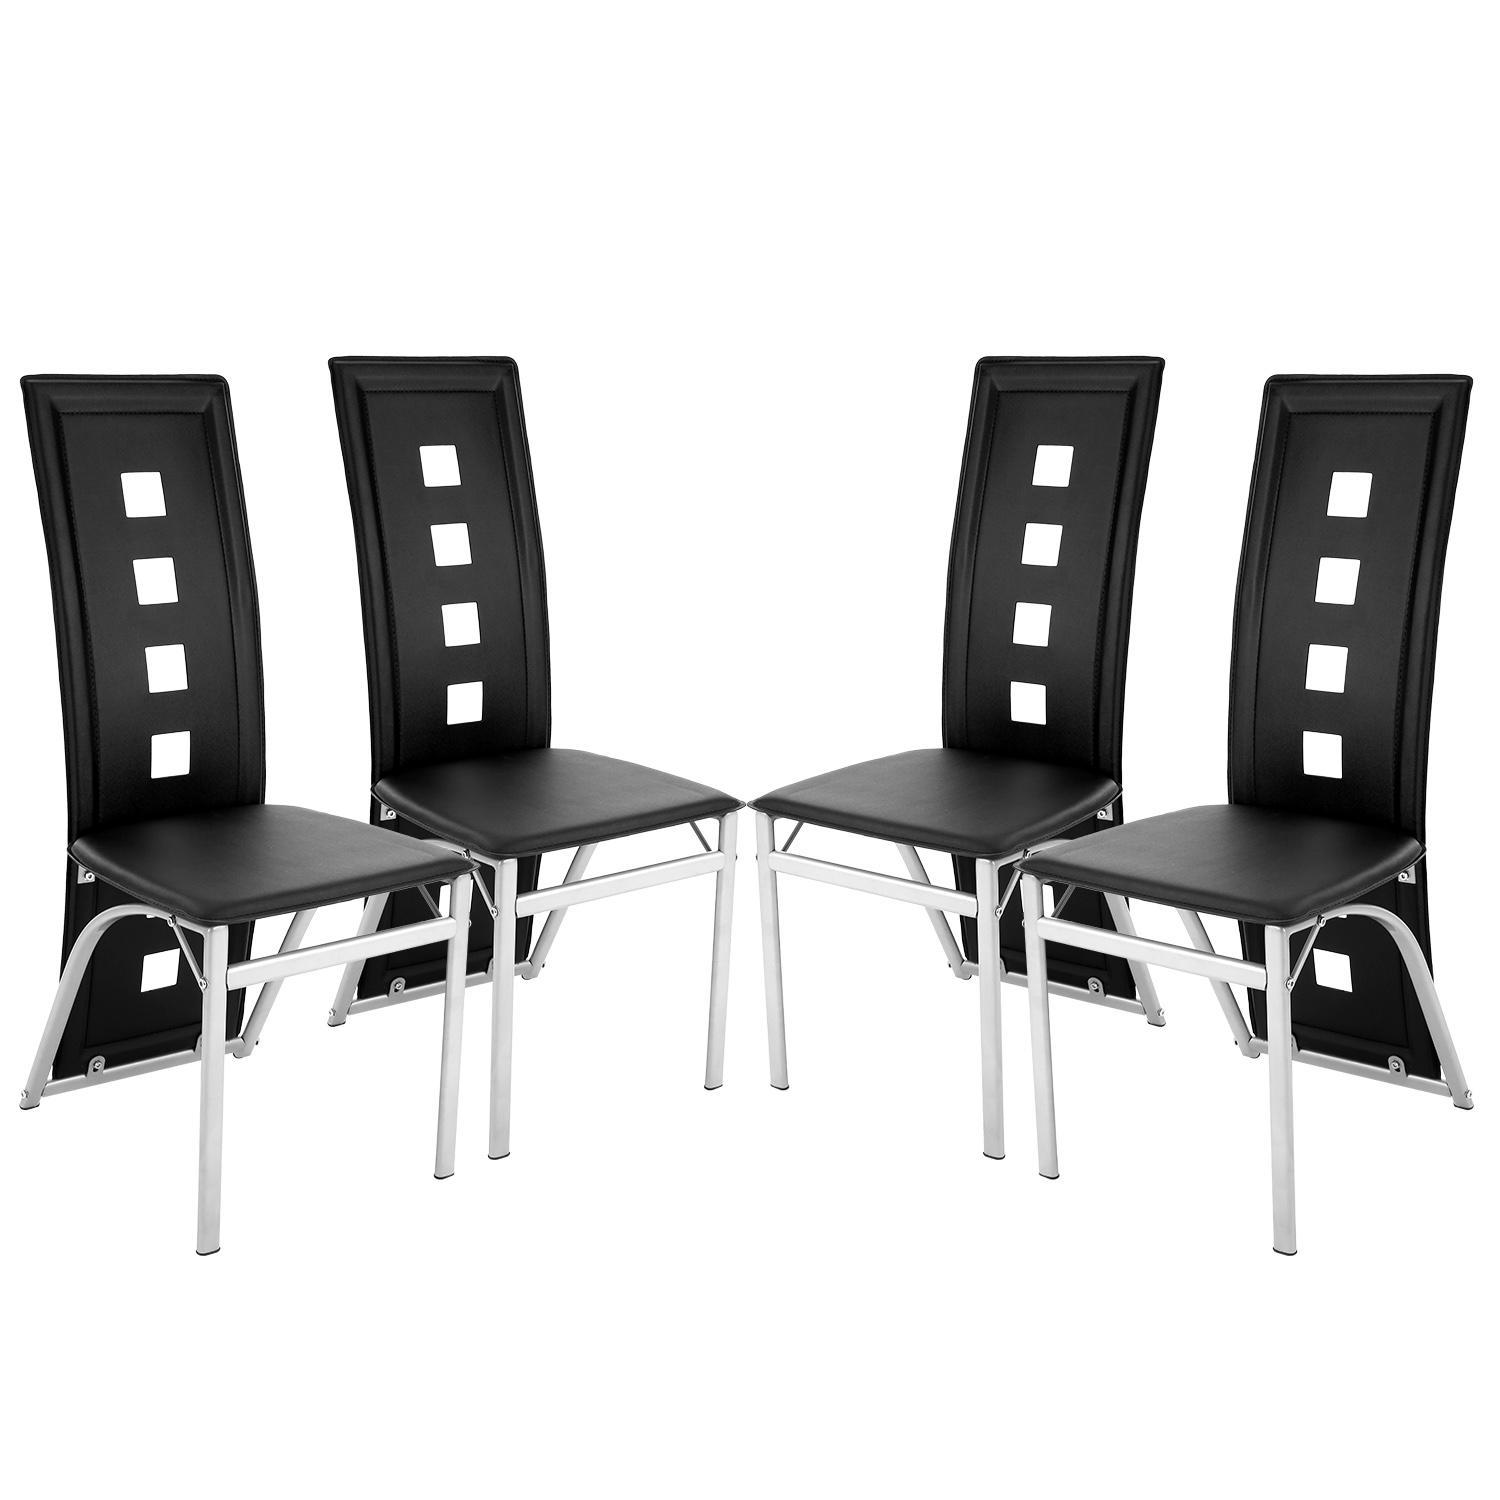 4pcs Modern Dining Chair High Back for Home Kitchen Restaurant Black MSARTS